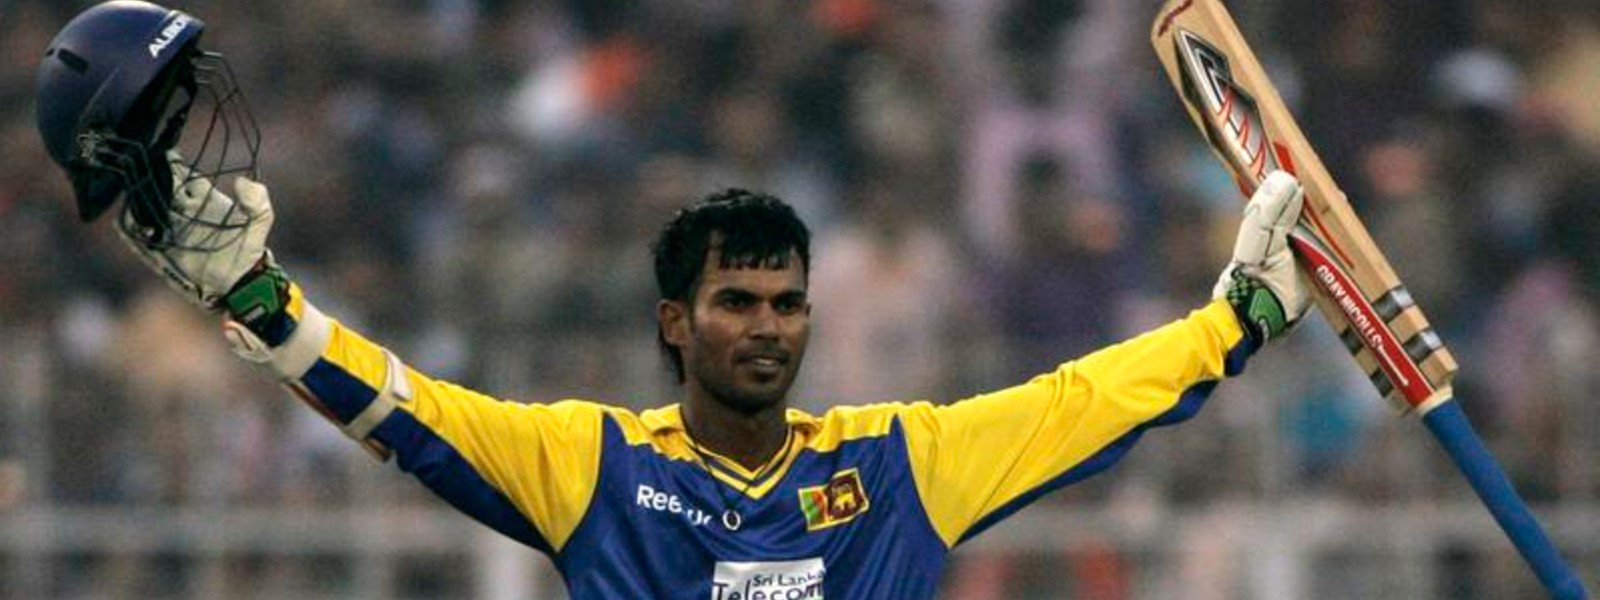 Upul Tharanga provides statement to investigators on 2011 CWC match-fixing claims